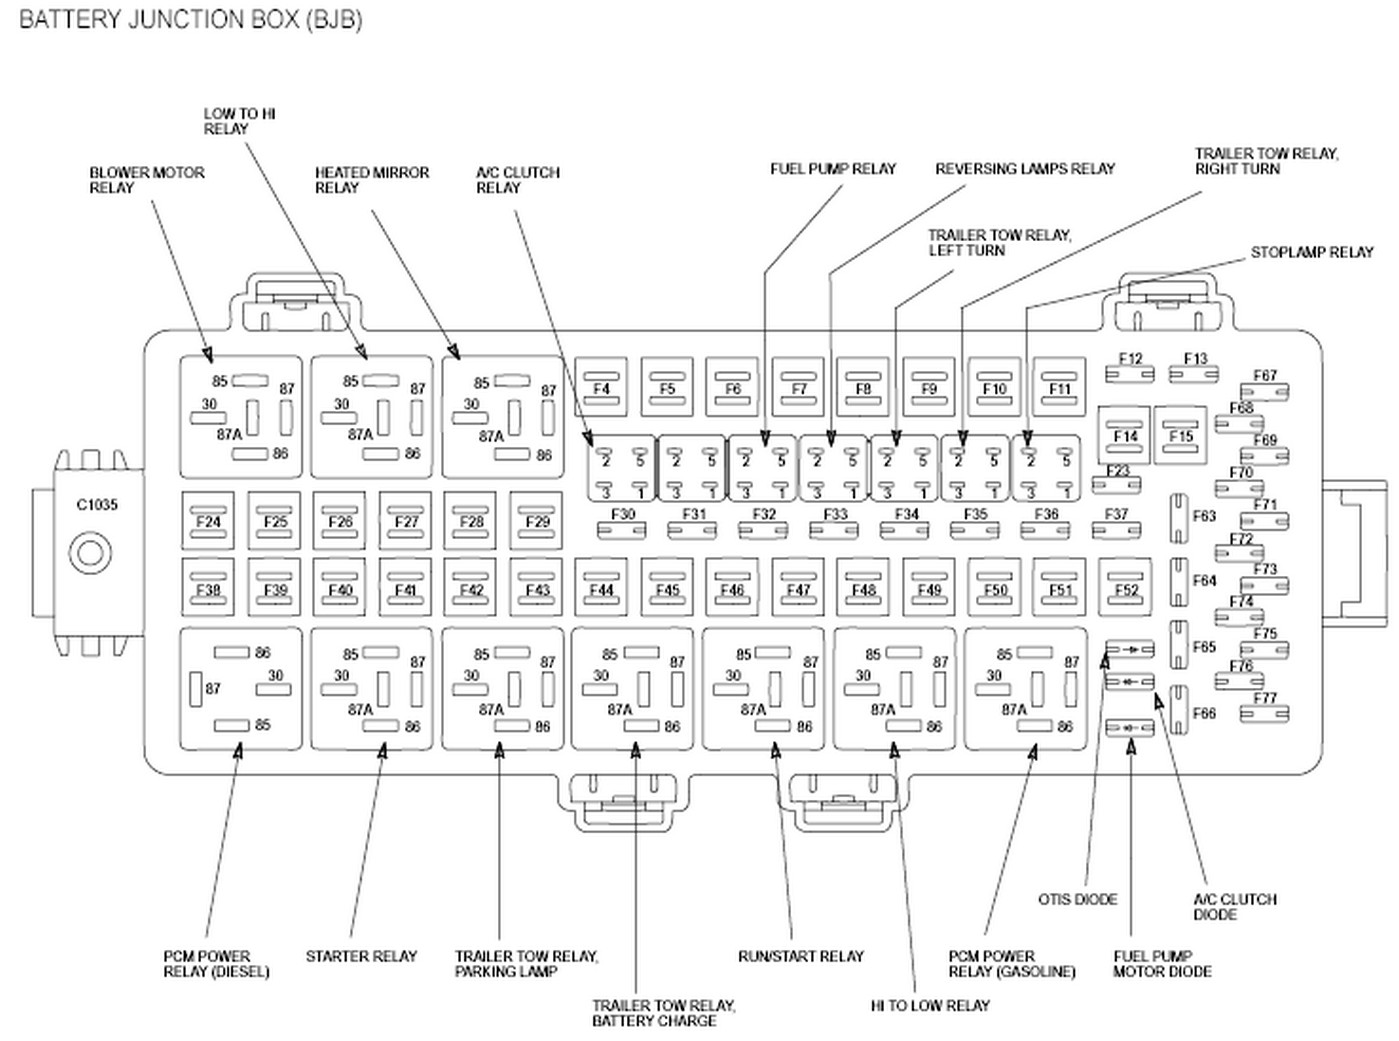 2012 F350 Fuse Box Wiring Diagram Schematics 2007 Mini Cooper 2011 Ford F 350 Schematic 08